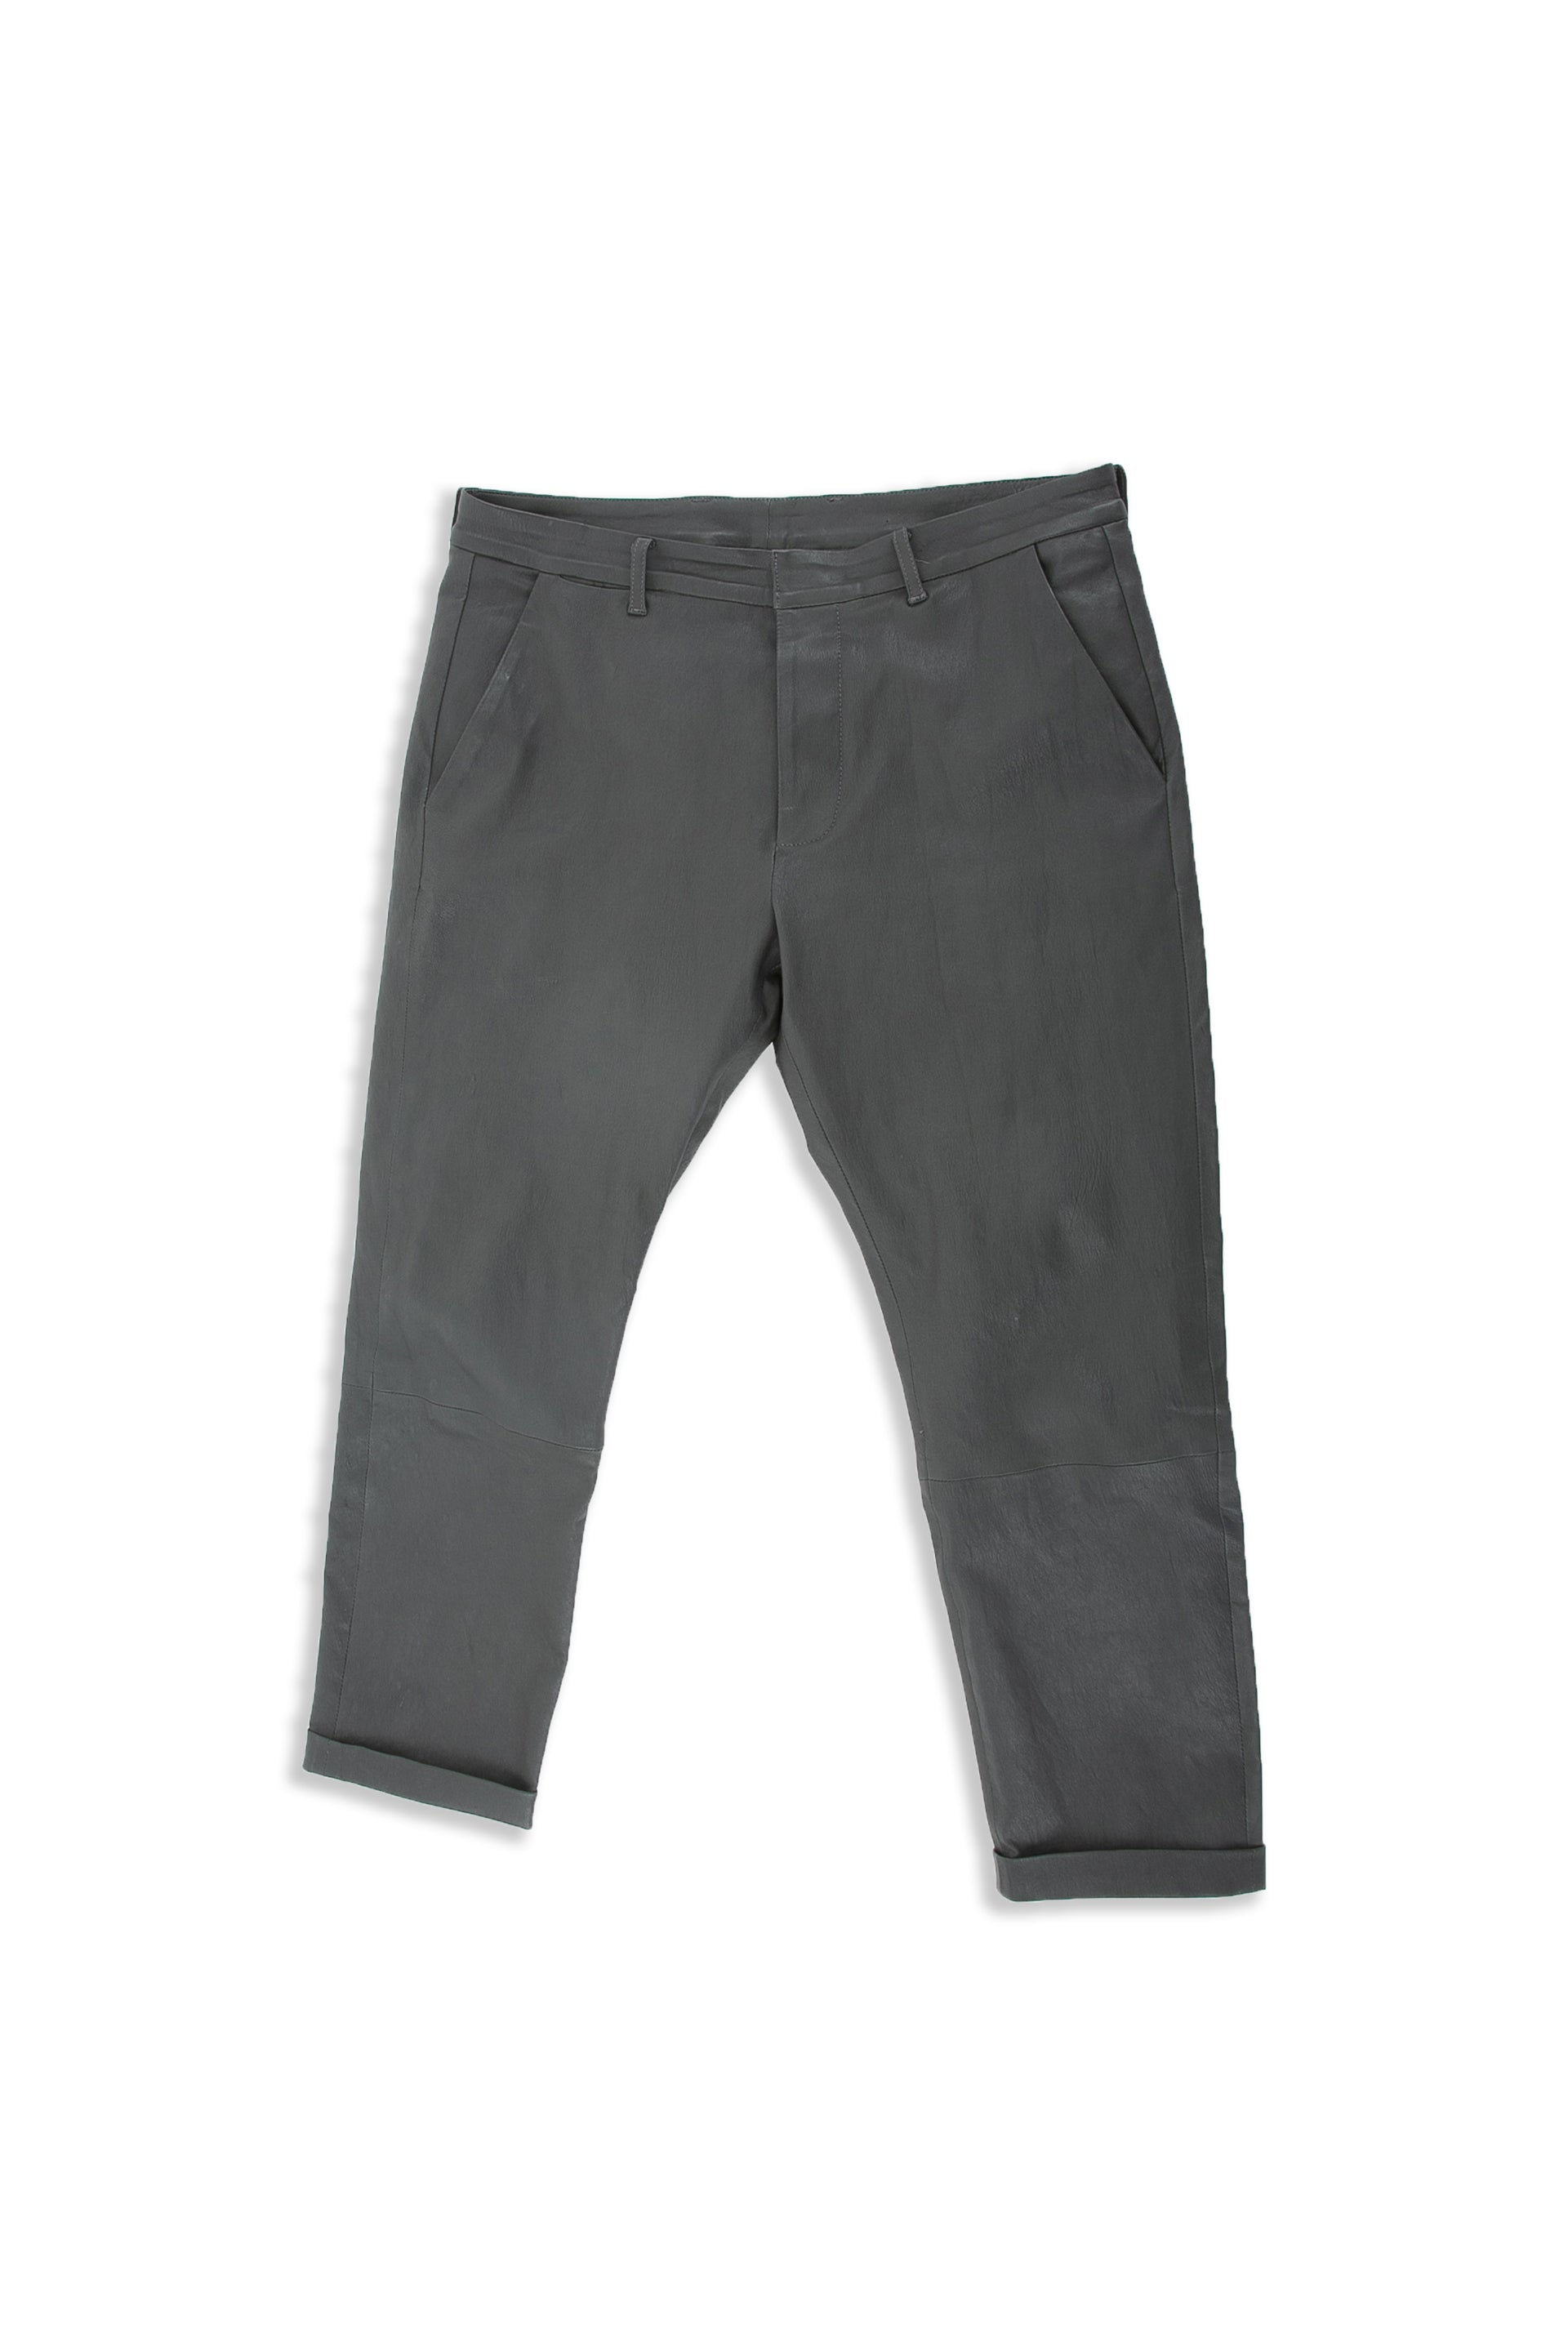 Front of Cuffed Leather Pant in Charcoal